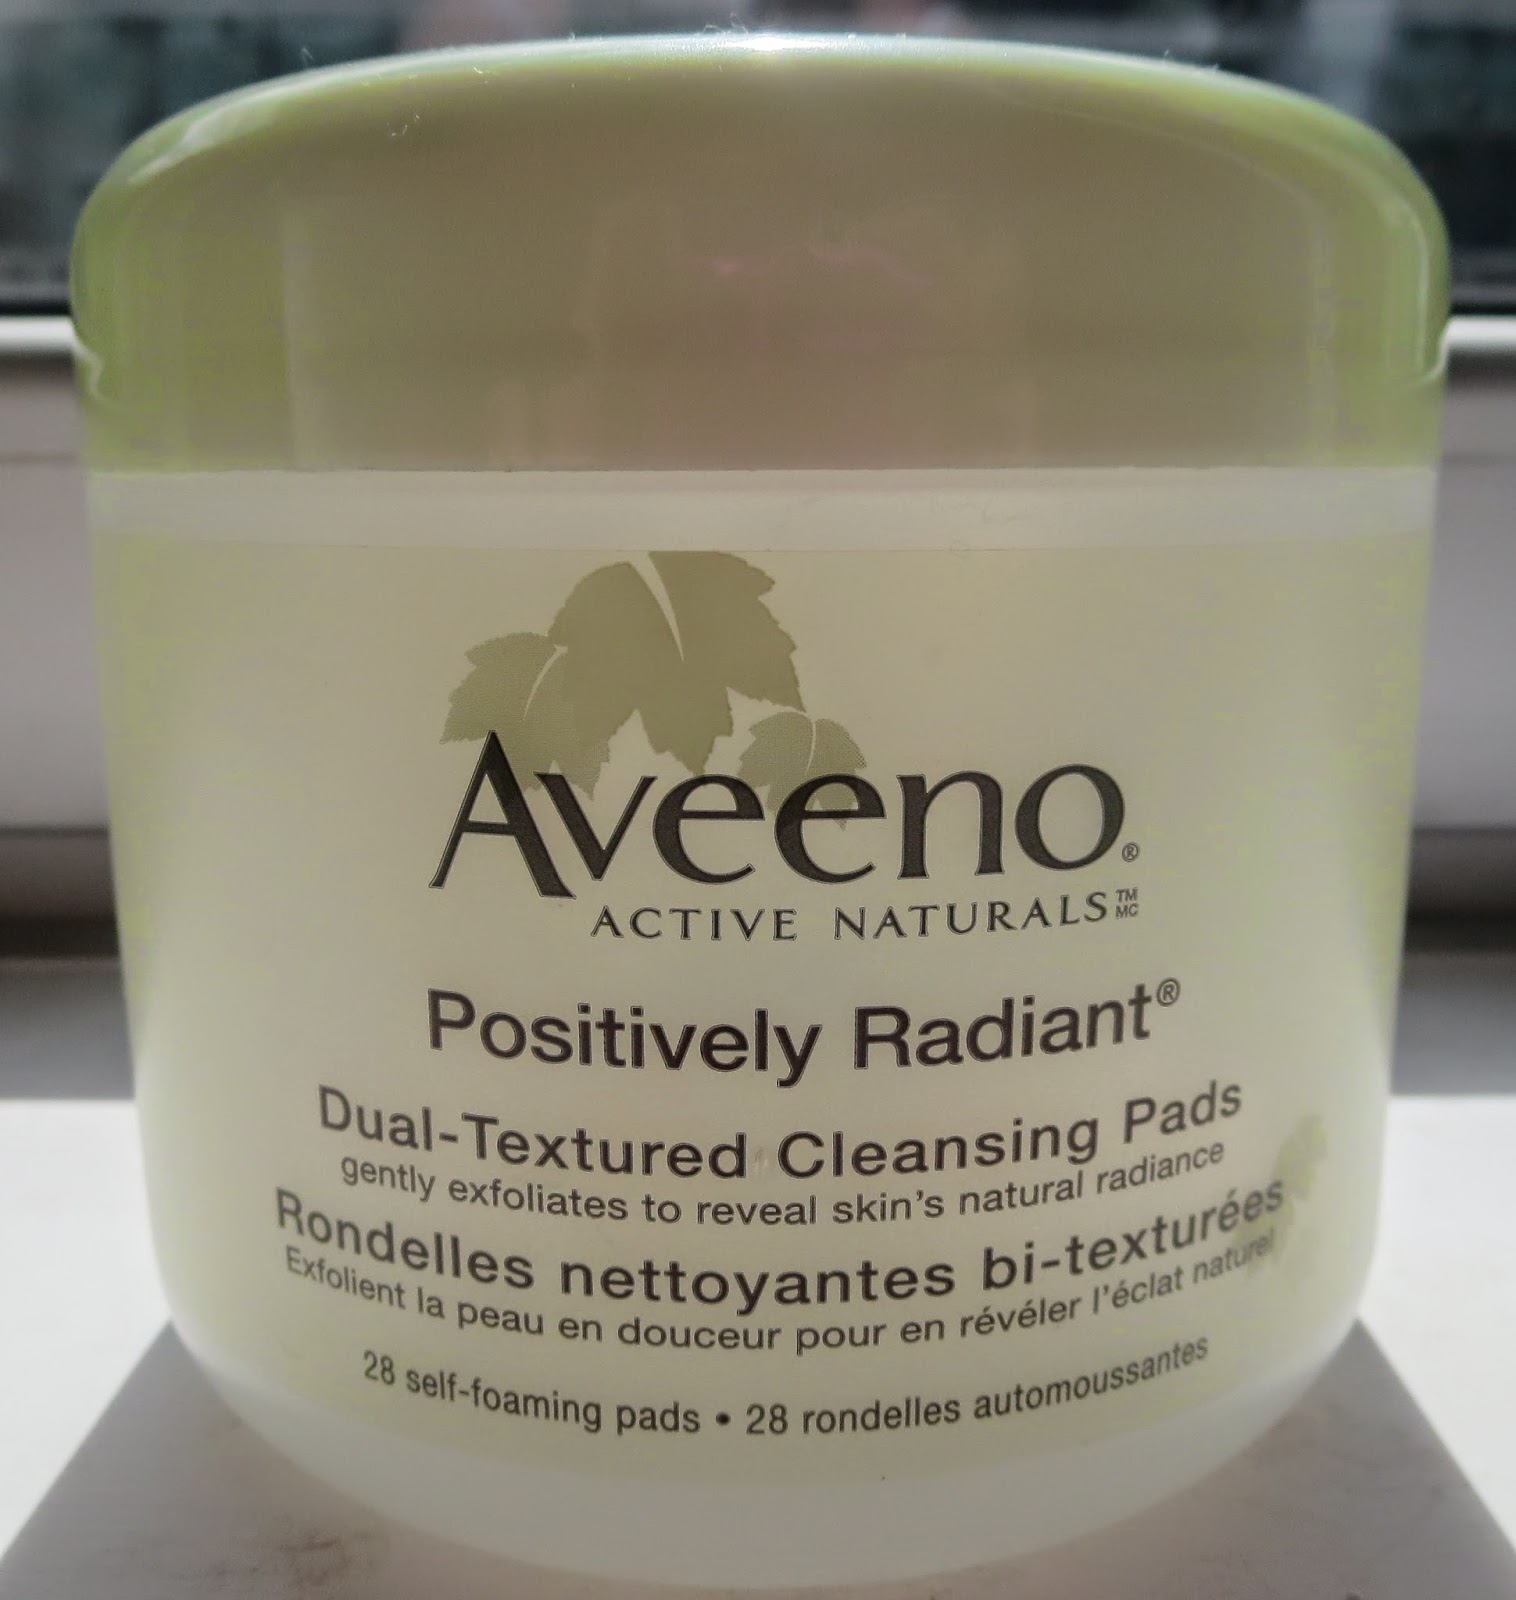 a picture of Aveeno Positively Radiant Dual Textured Cleansing Pads